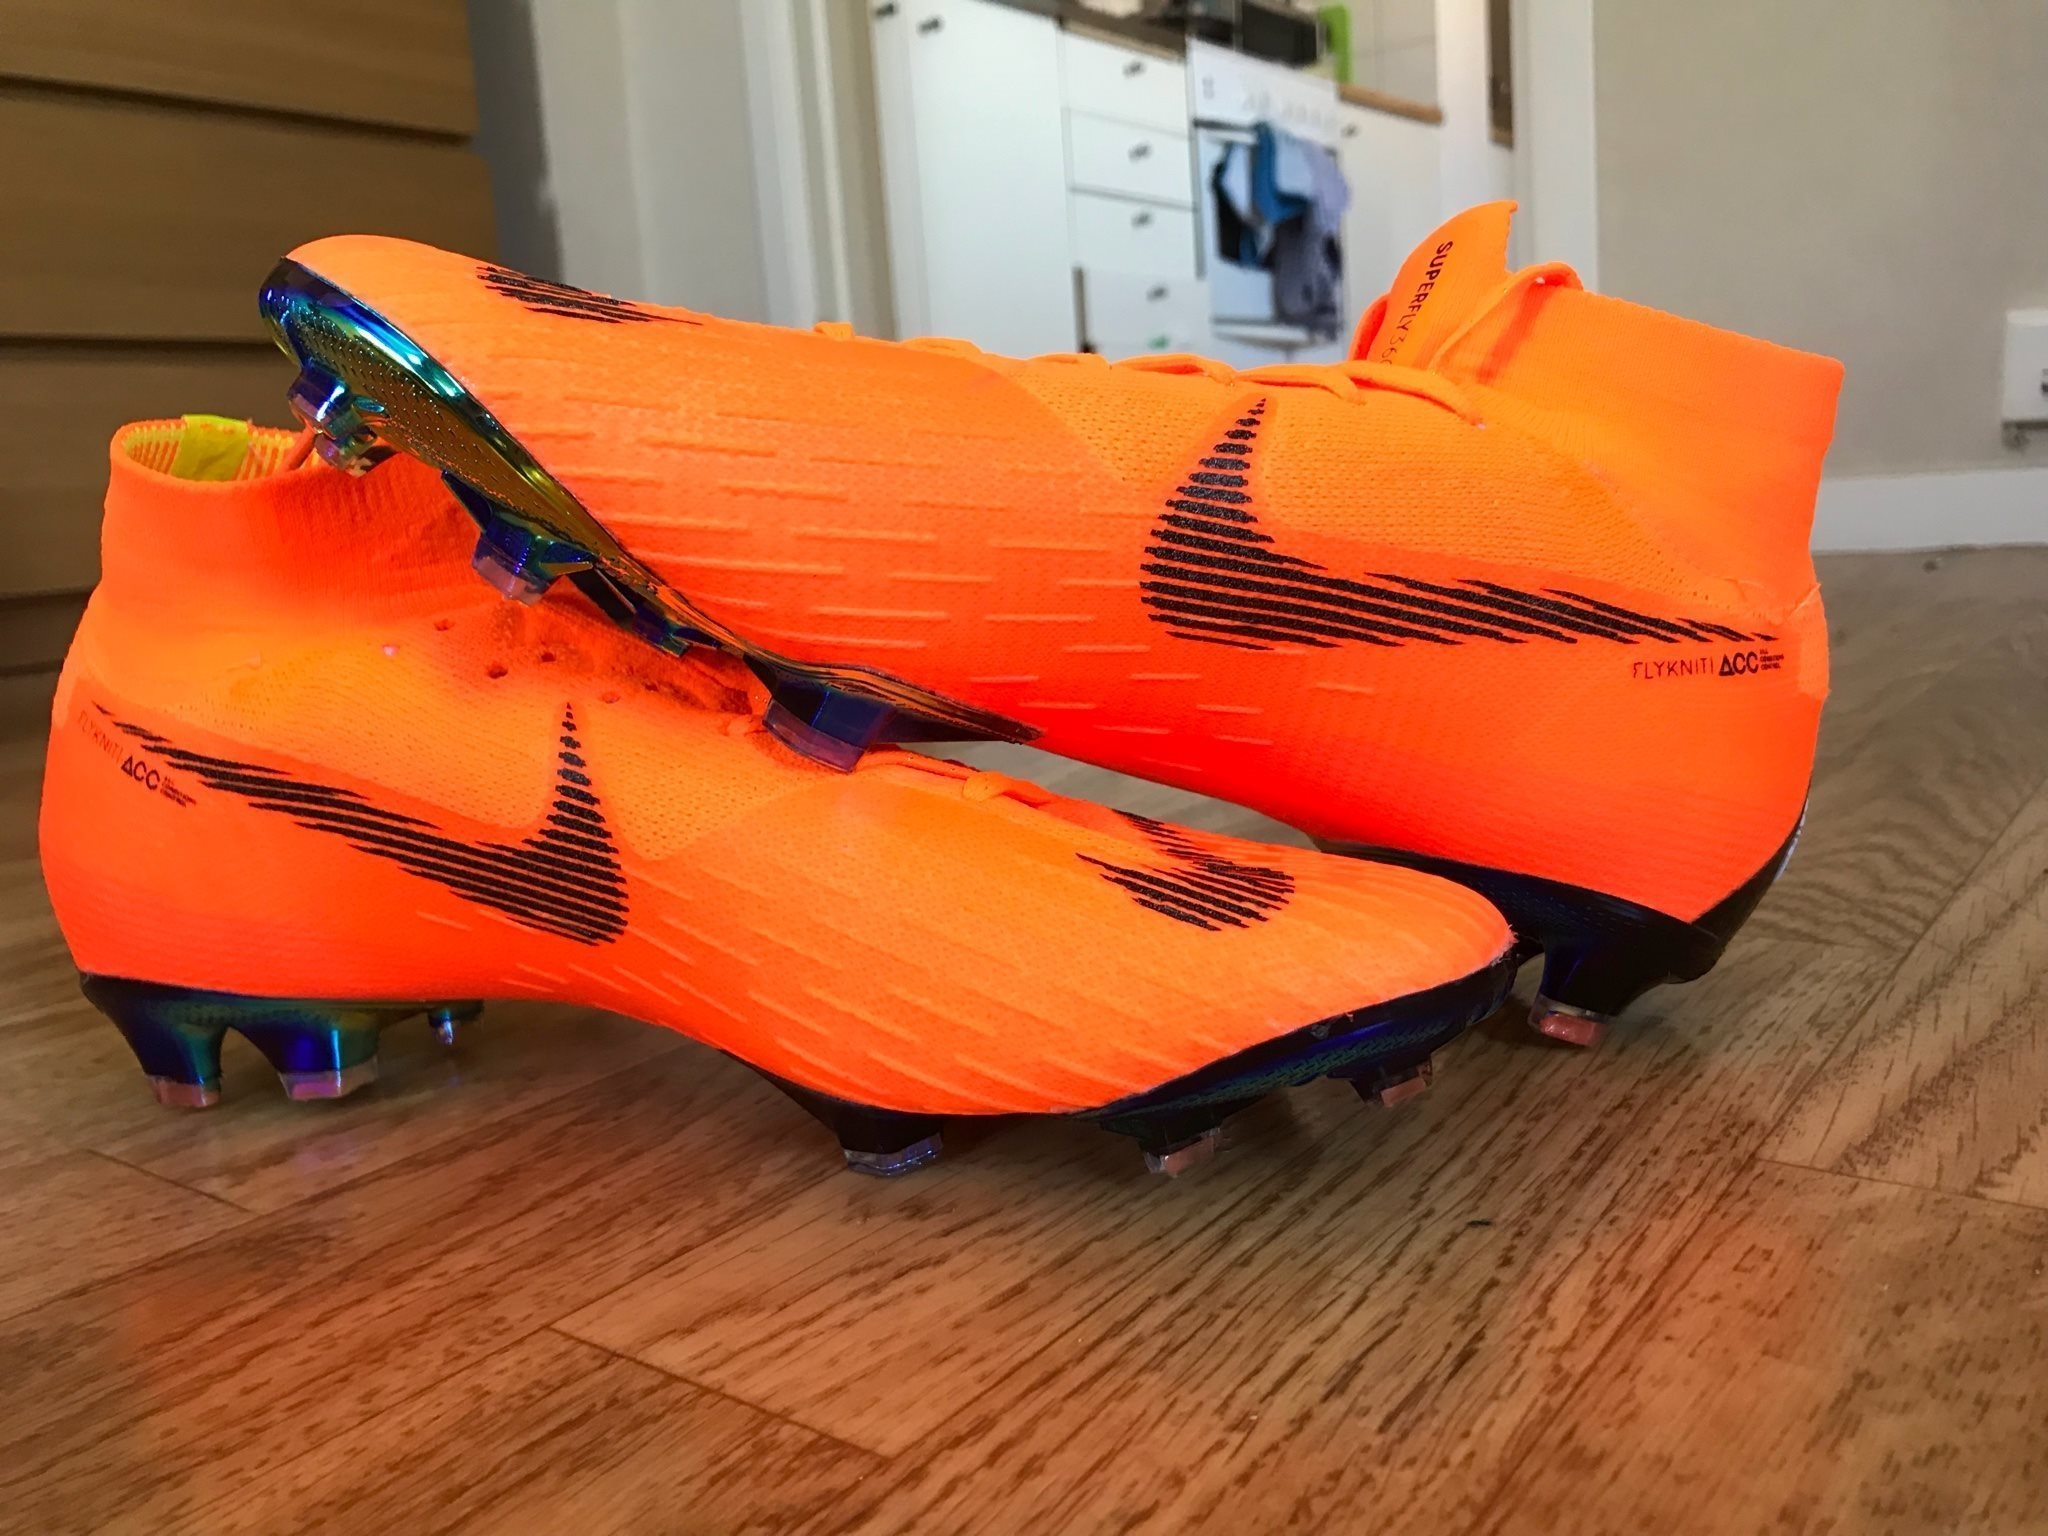 best website 80e6f 9a9a2 ... fotbollsskor 73276 521df  sweden nike mercurial superfly 6 elite fg  fast af orange svart neon 43 535be fc444